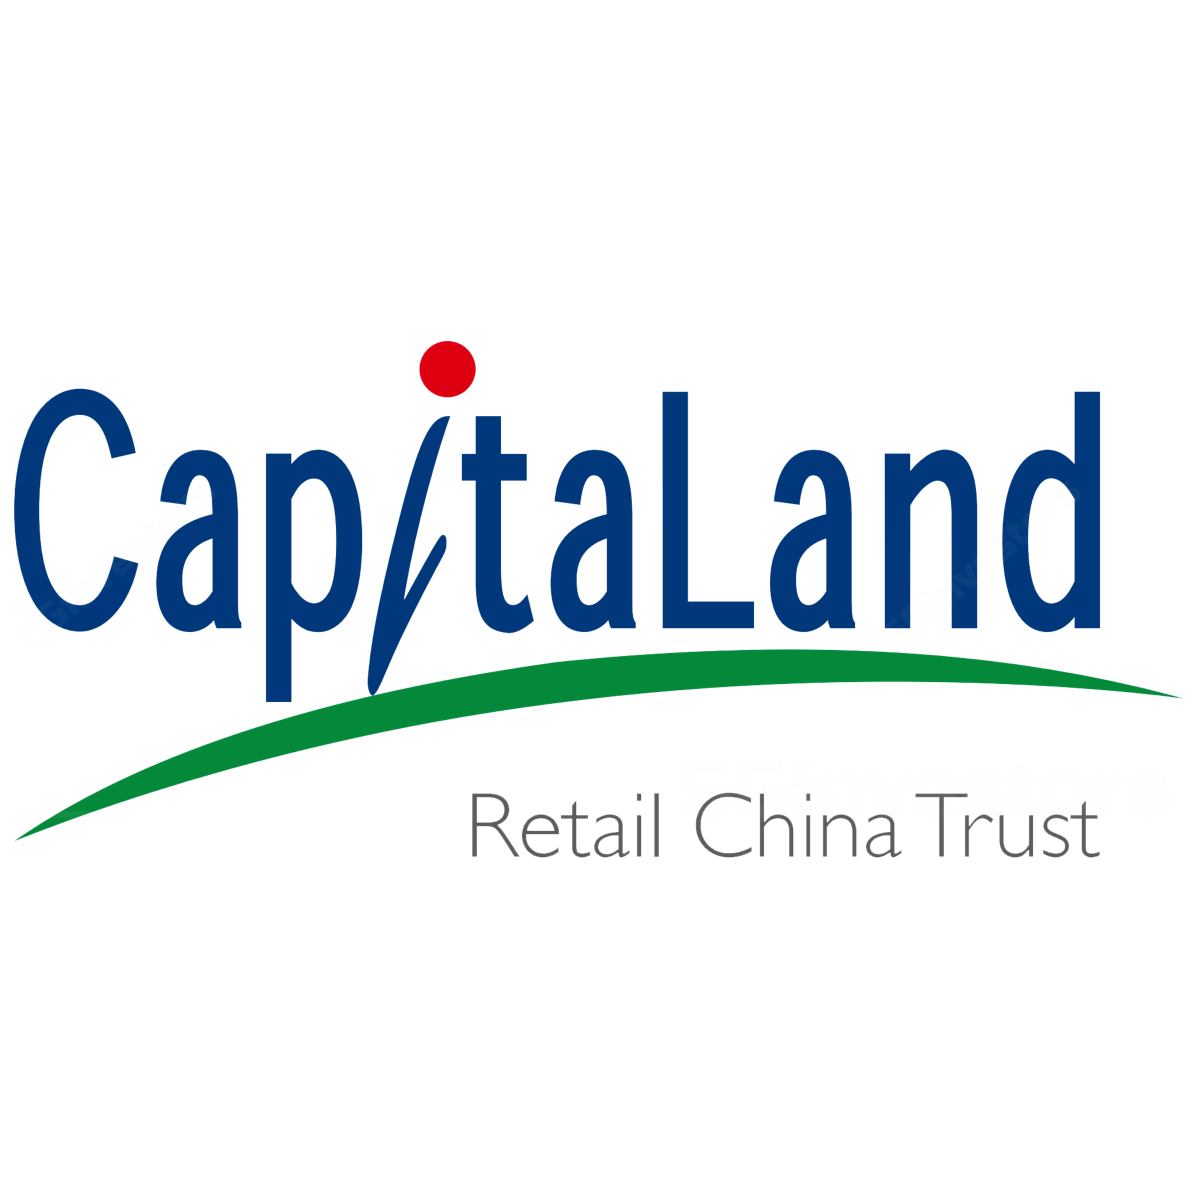 CapitaLand Retail China Trust - OCBC Investment 2018-02-01: Rock Sq. Acquired